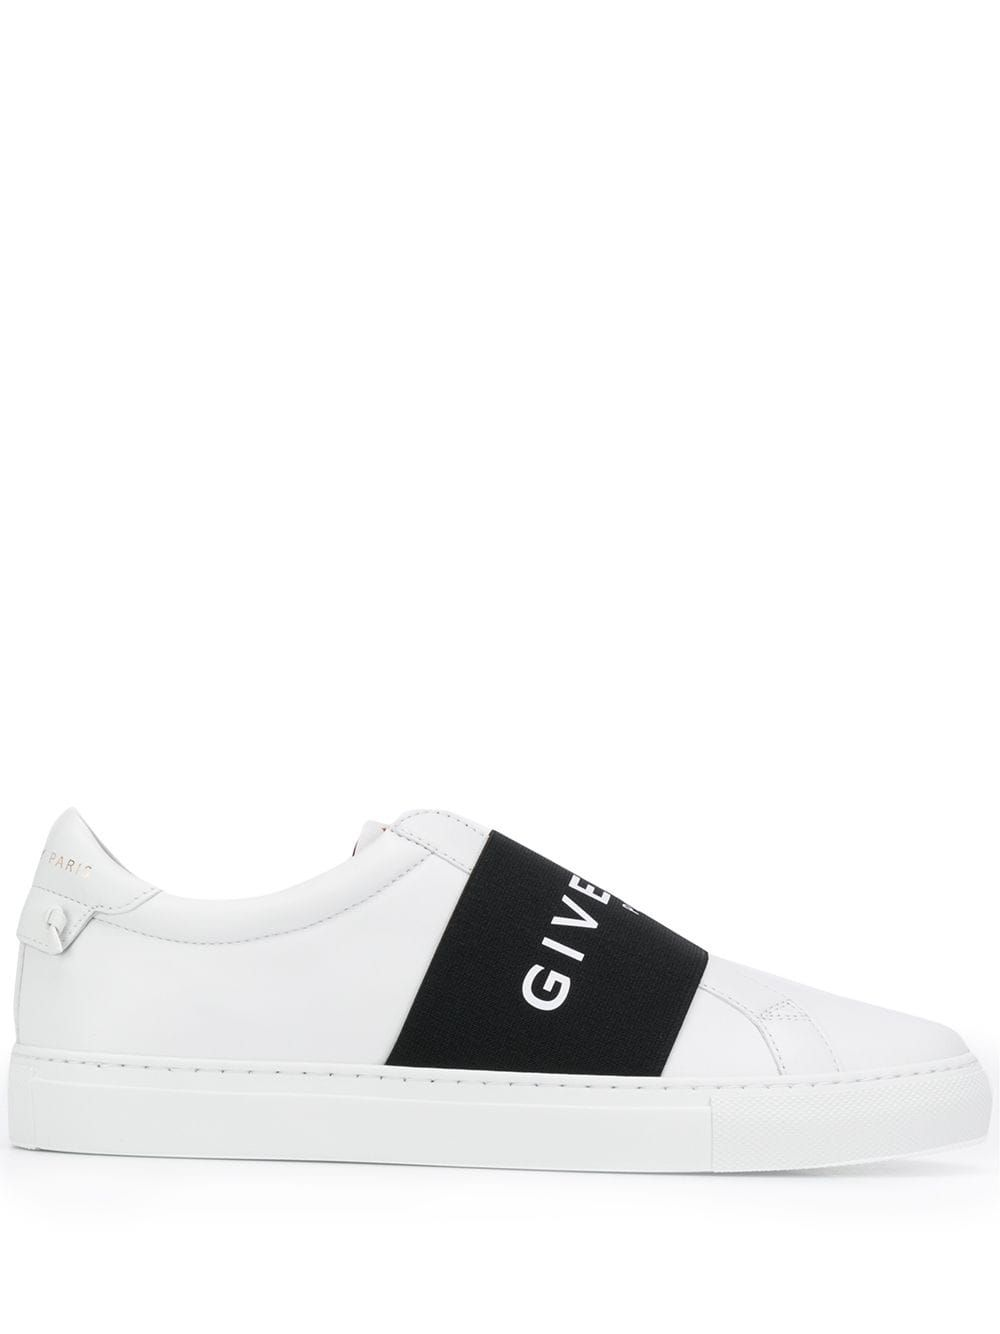 Strap logo sneakers | Sneakers, Calf leather, Givenchy